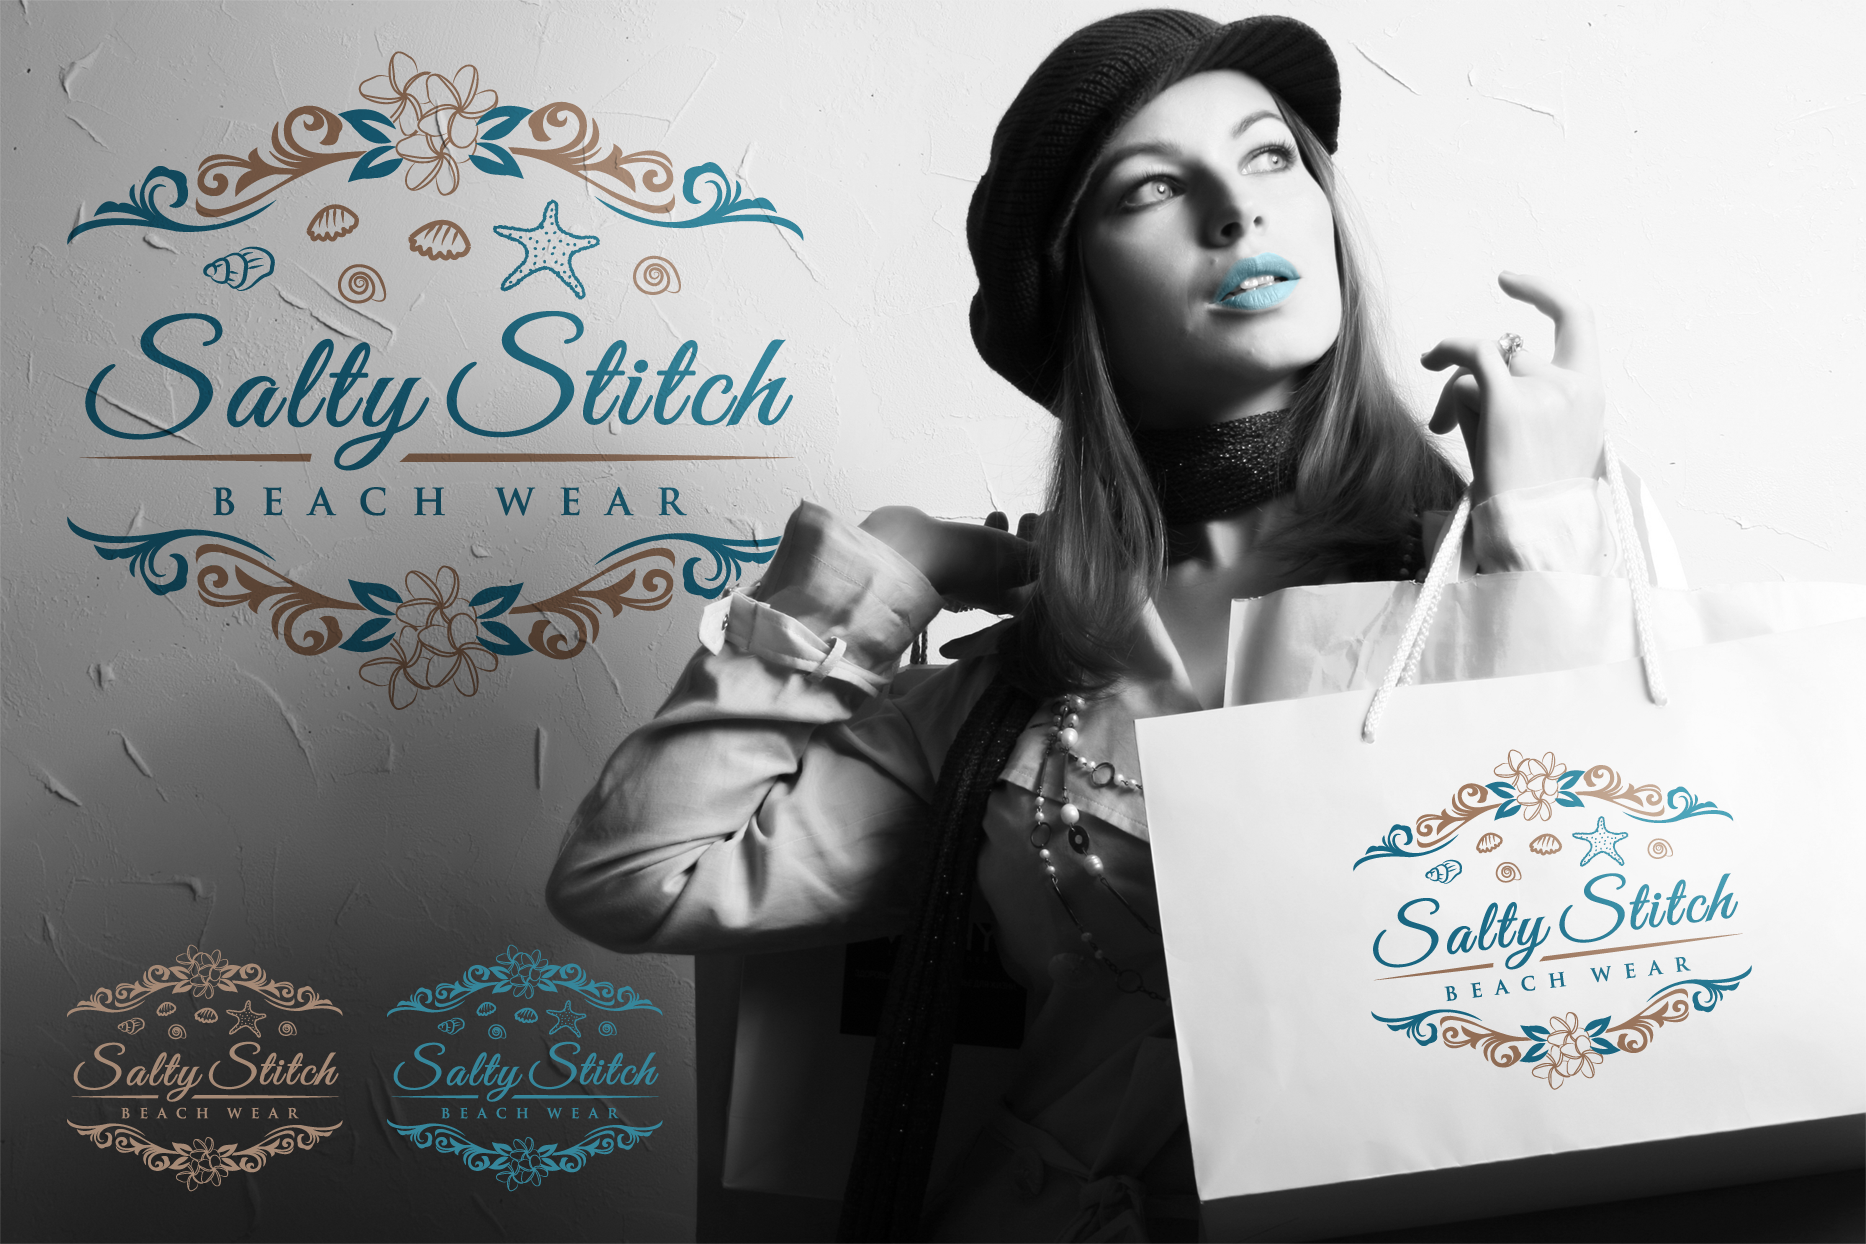 Create the next logo for Salty Stitch